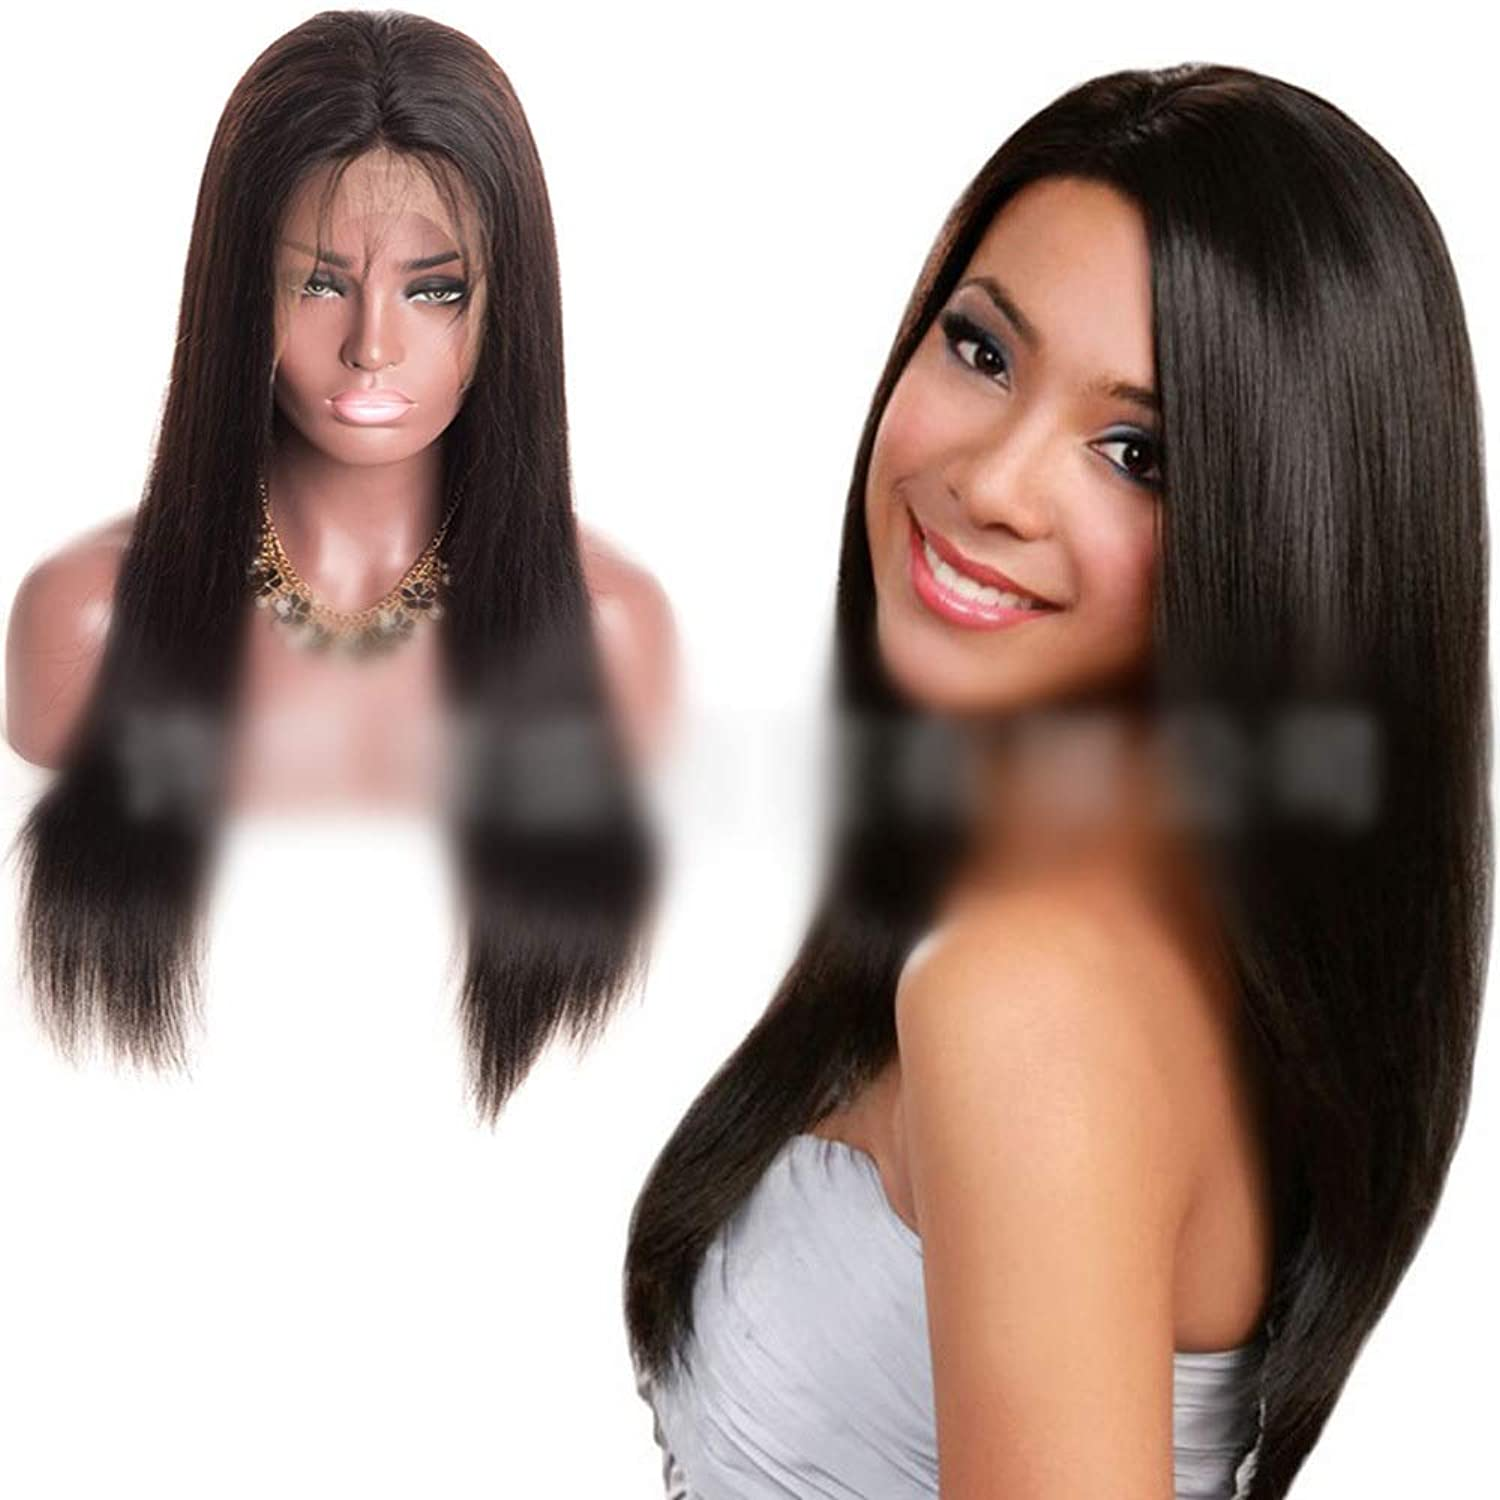 8  22 , Natural color HandWoven Long Straight Hair Full Lace Front Human Hair Wig for Women DIY Fun (color   Black, Size   8 inch)